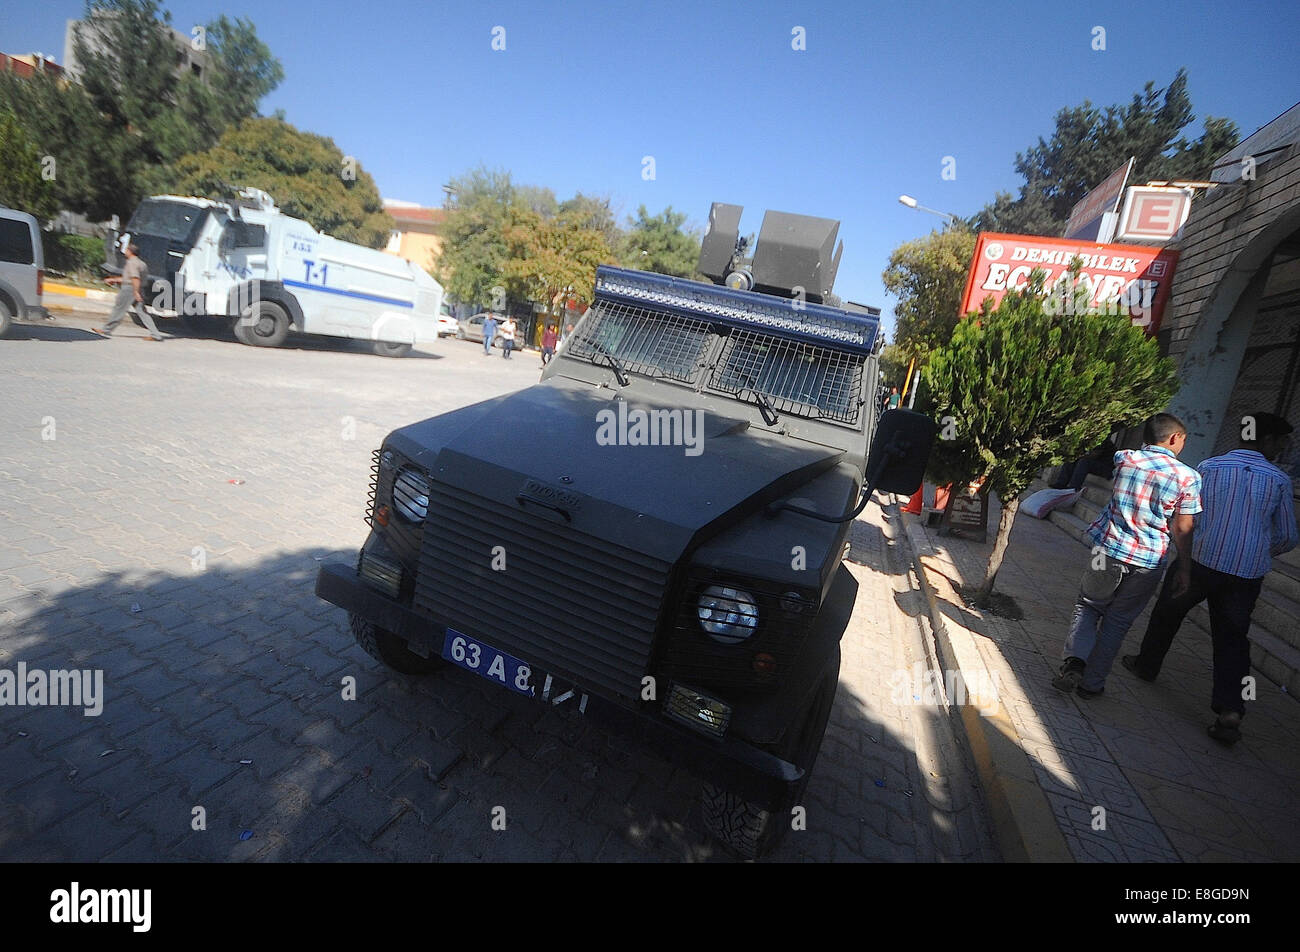 Suruc, Turkey. 7th Oct, 2014. Tear gas vehicles and water canon vehicles can be seen lining the streets in Suruc - Stock Image